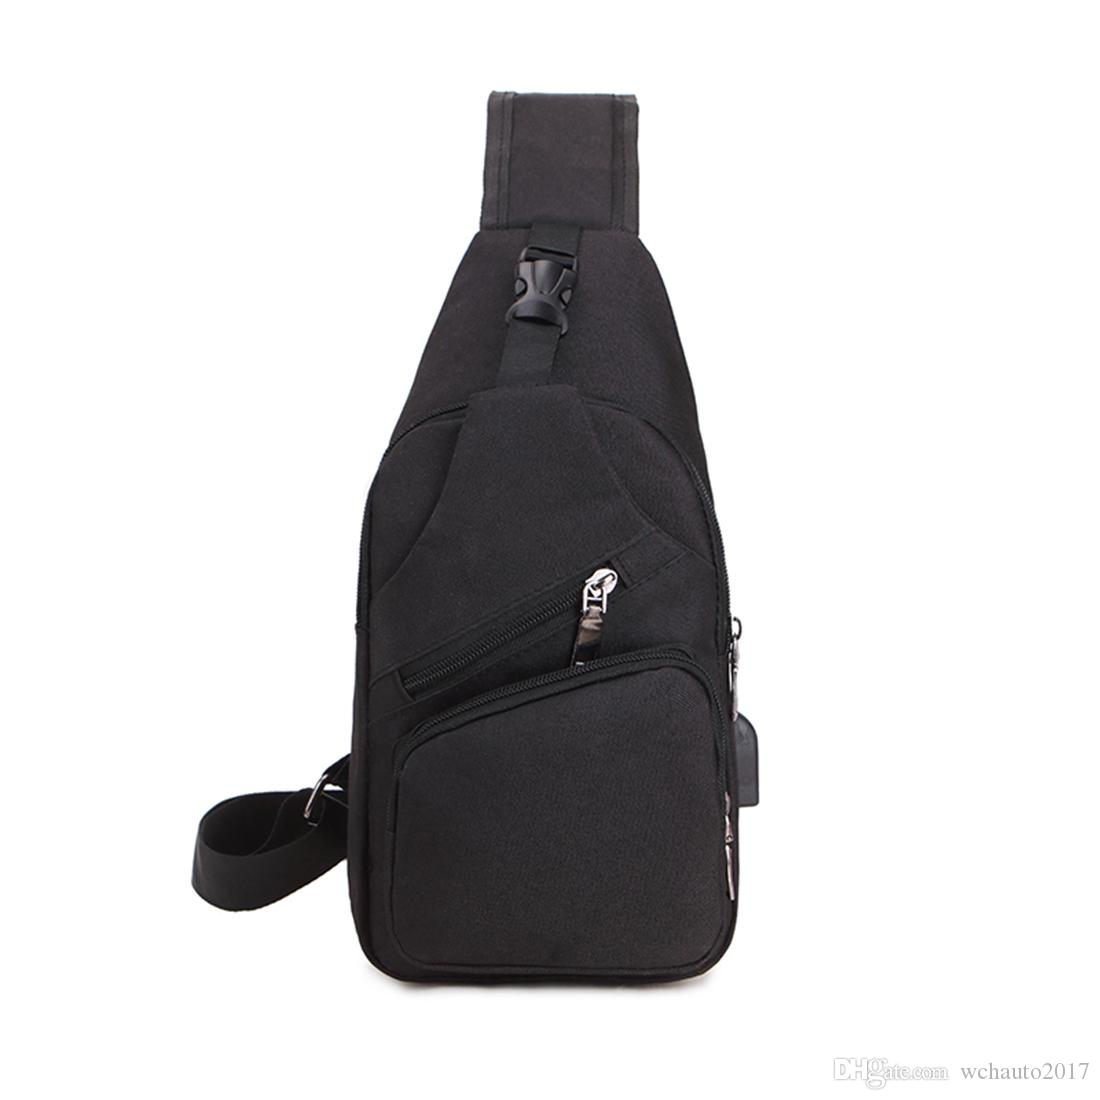 2019 Sling Backpack Bag Newest Oxford Crossbody Bag Chest Shoulder Triangle  Backpack Sport Bag For Man Outdoor Running Travel Cycling Hiking From ... 5bedde64fcbc3